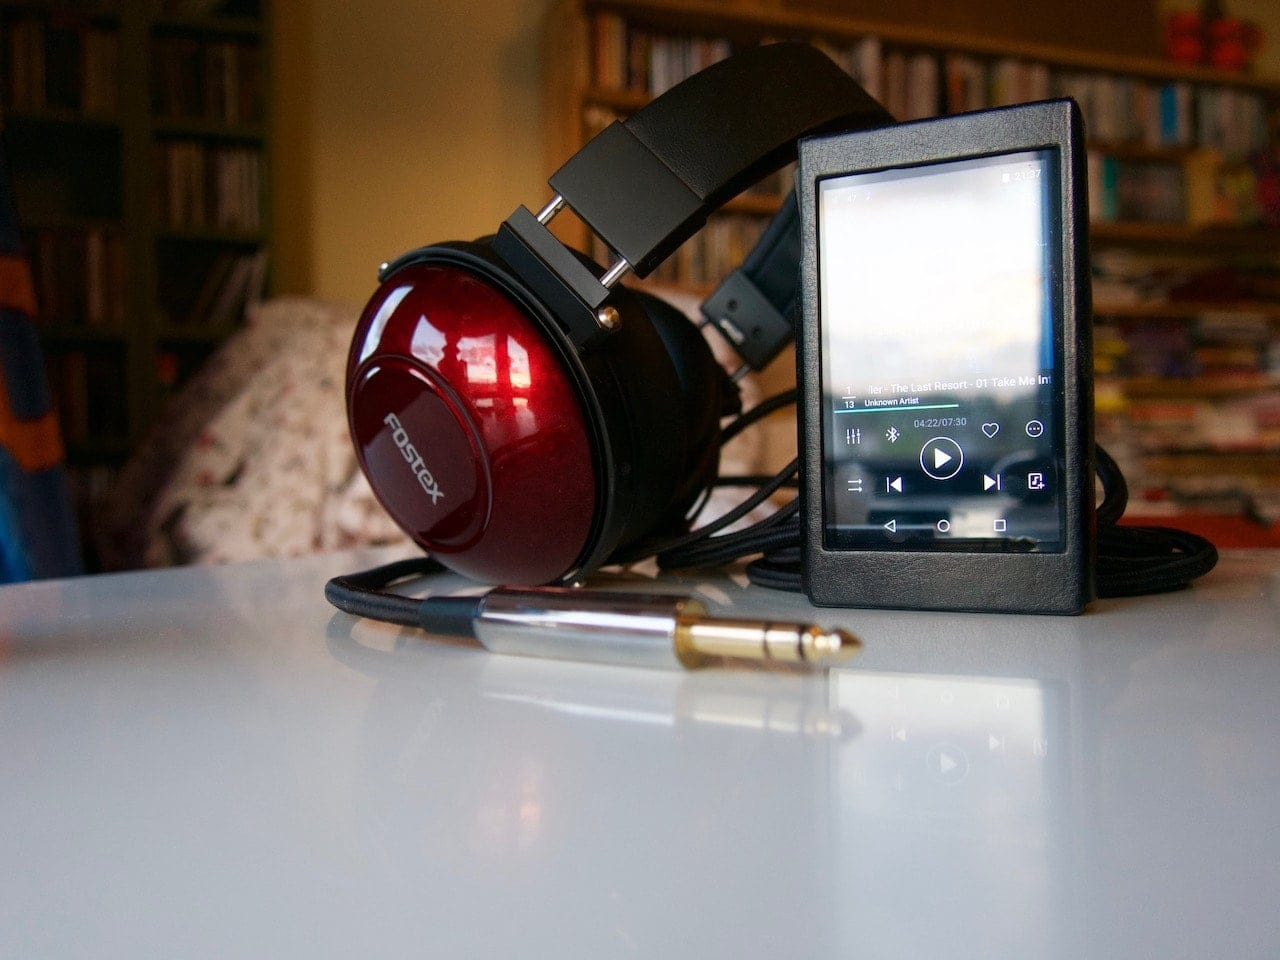 Fiio X5 III DAP with Fostex TH900